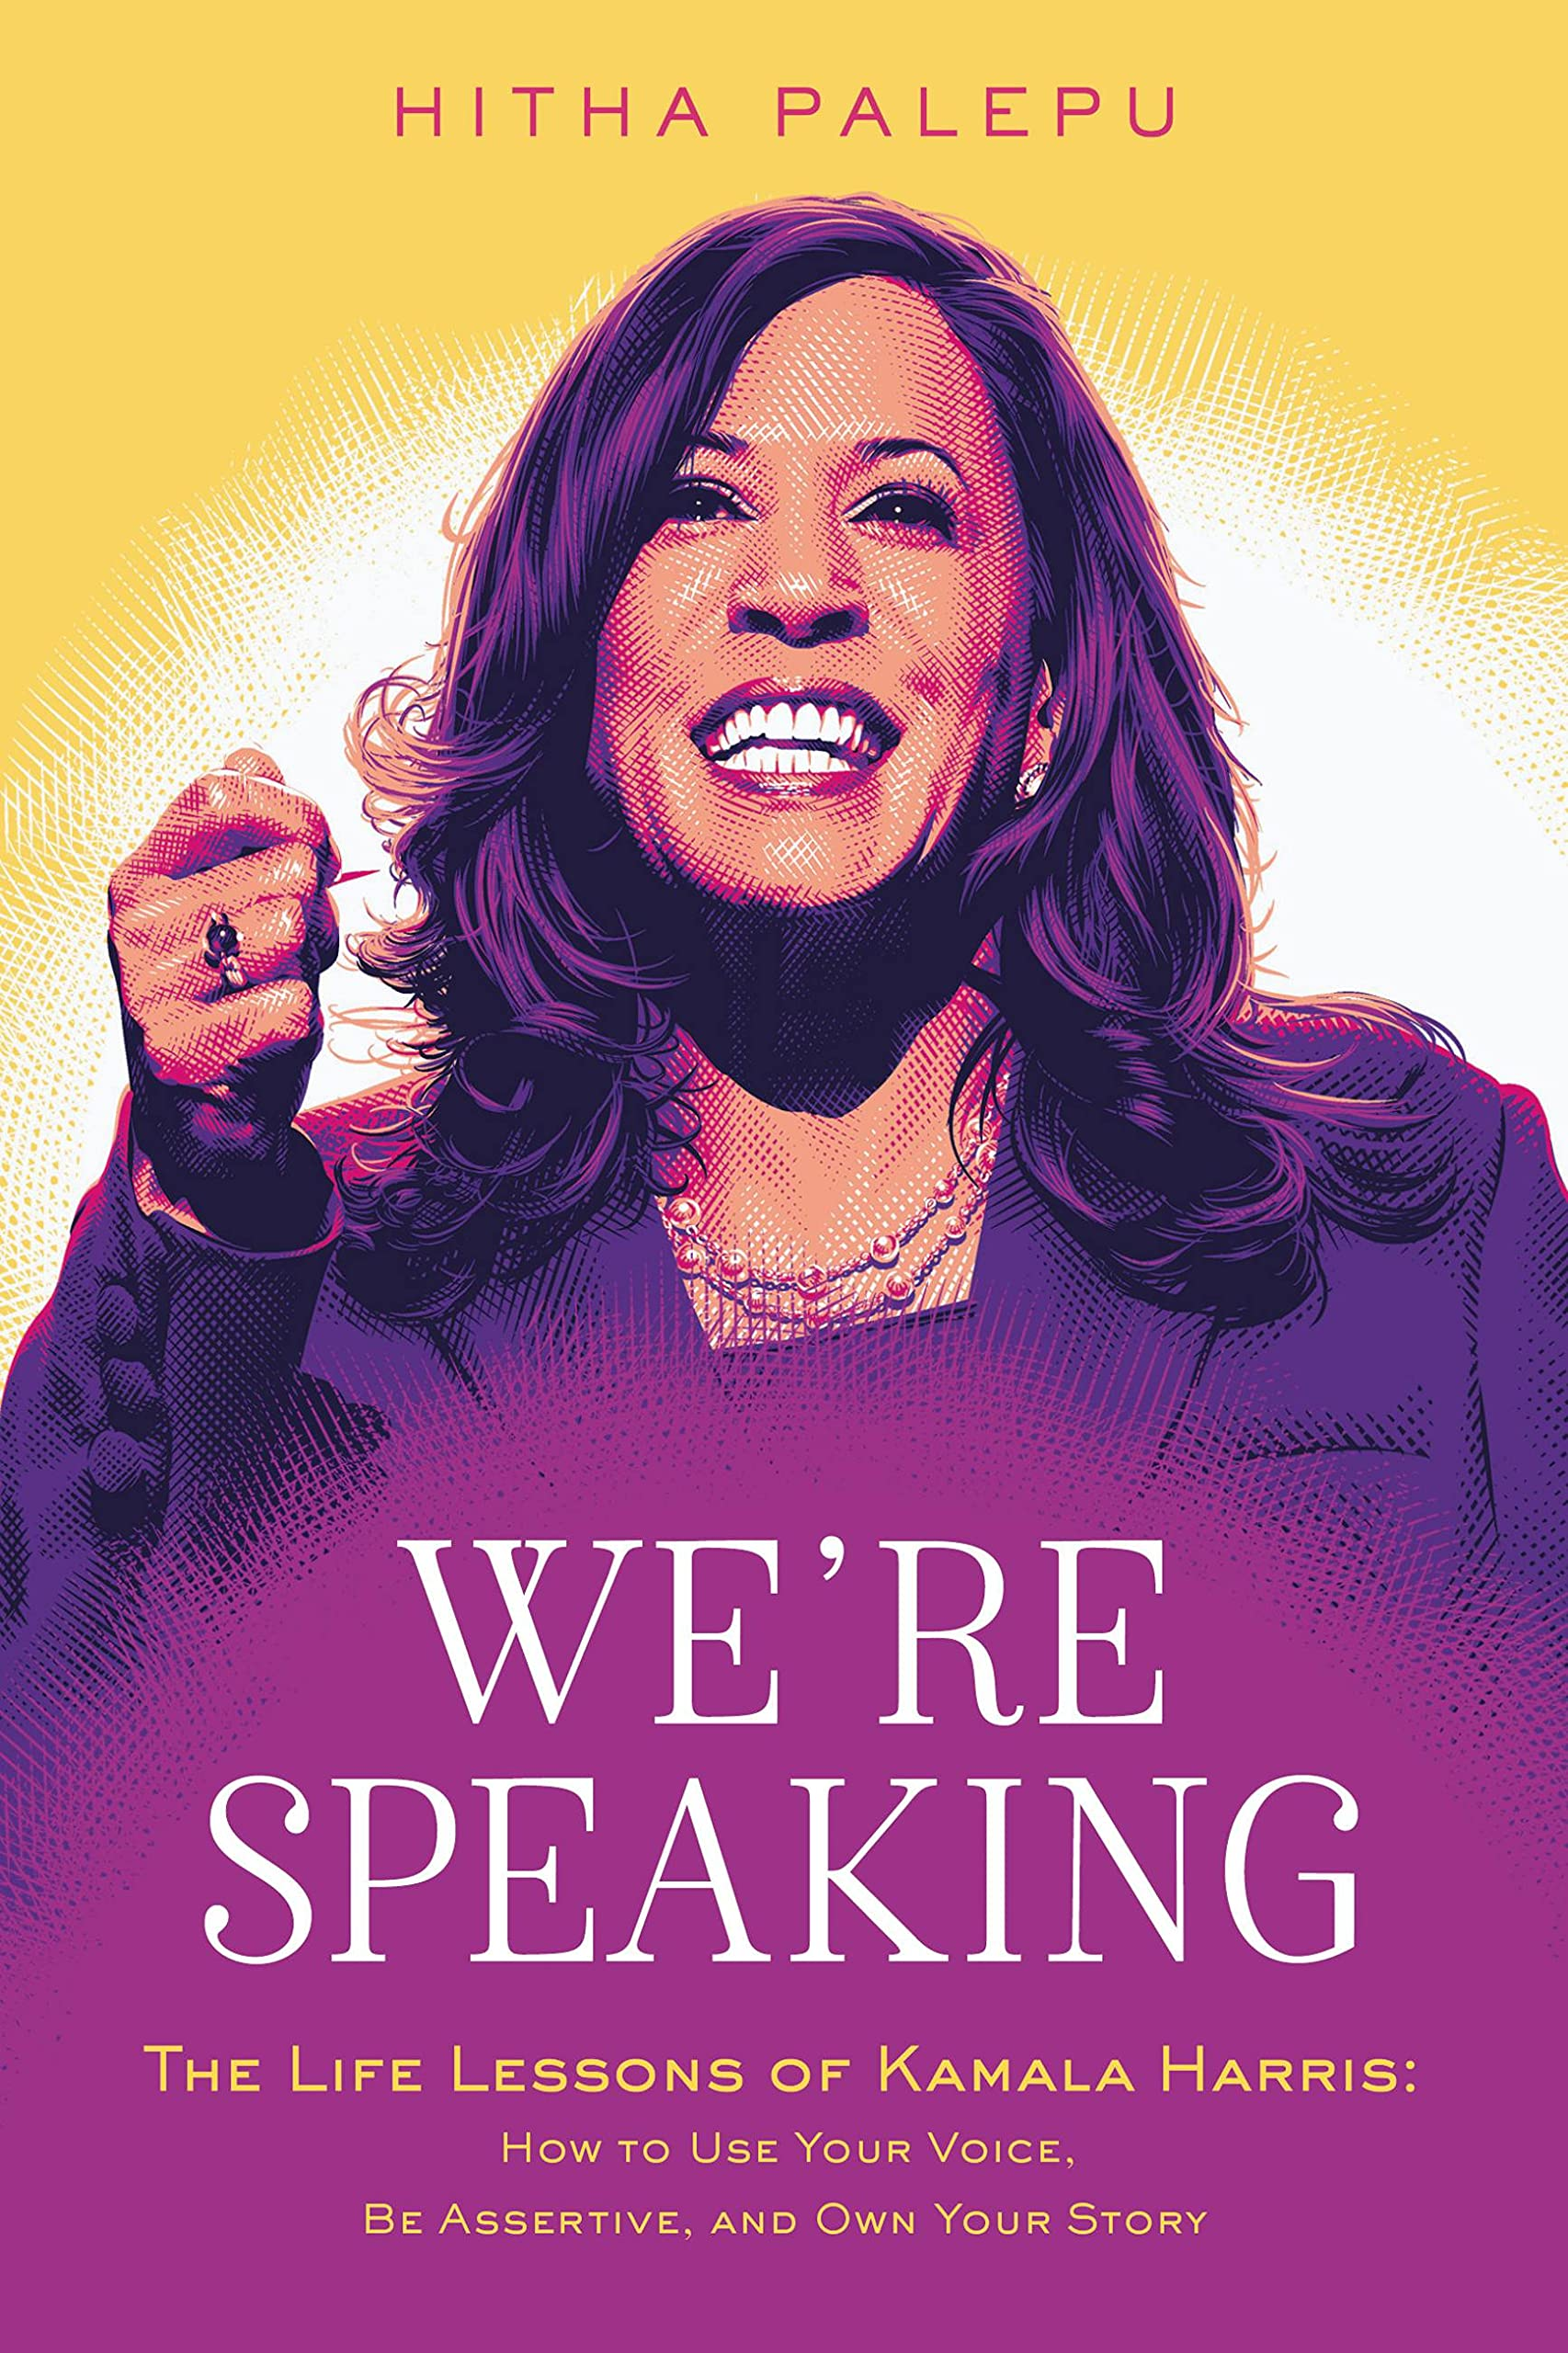 We're Speaking The Life Lessons of Kamala Harris: How to Use Your Voice, Be Assertive, and Own Your Story